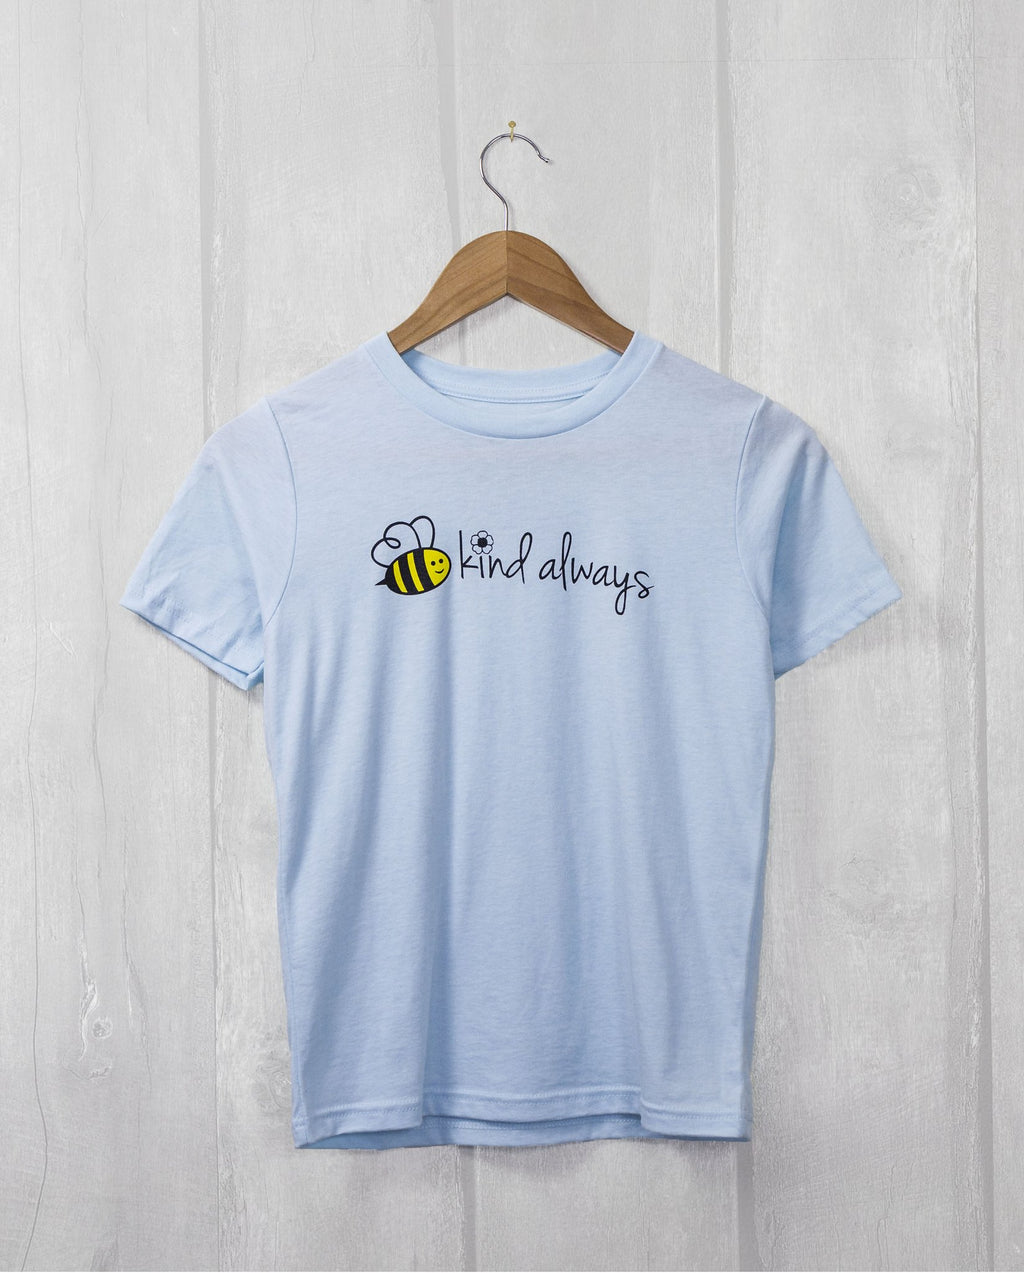 Bee Kind Always - Jr. Adult tee